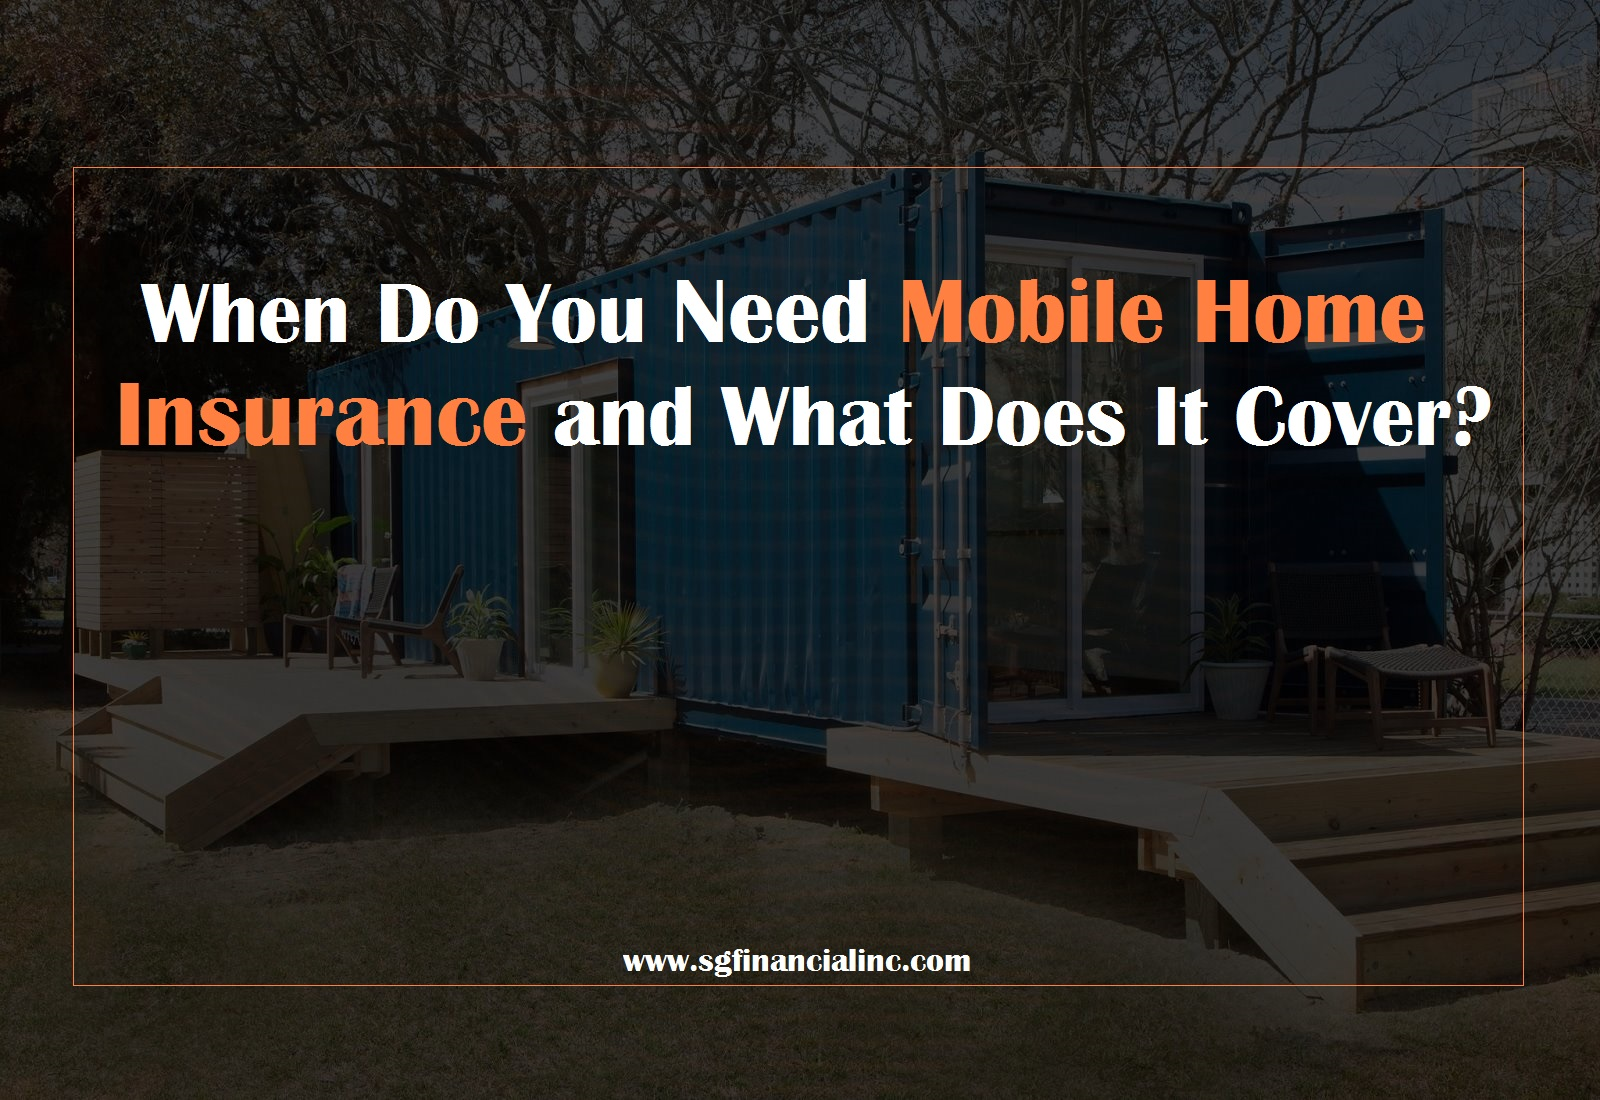 When Do You Need Mobile Home Insurance and What Does It Cover?